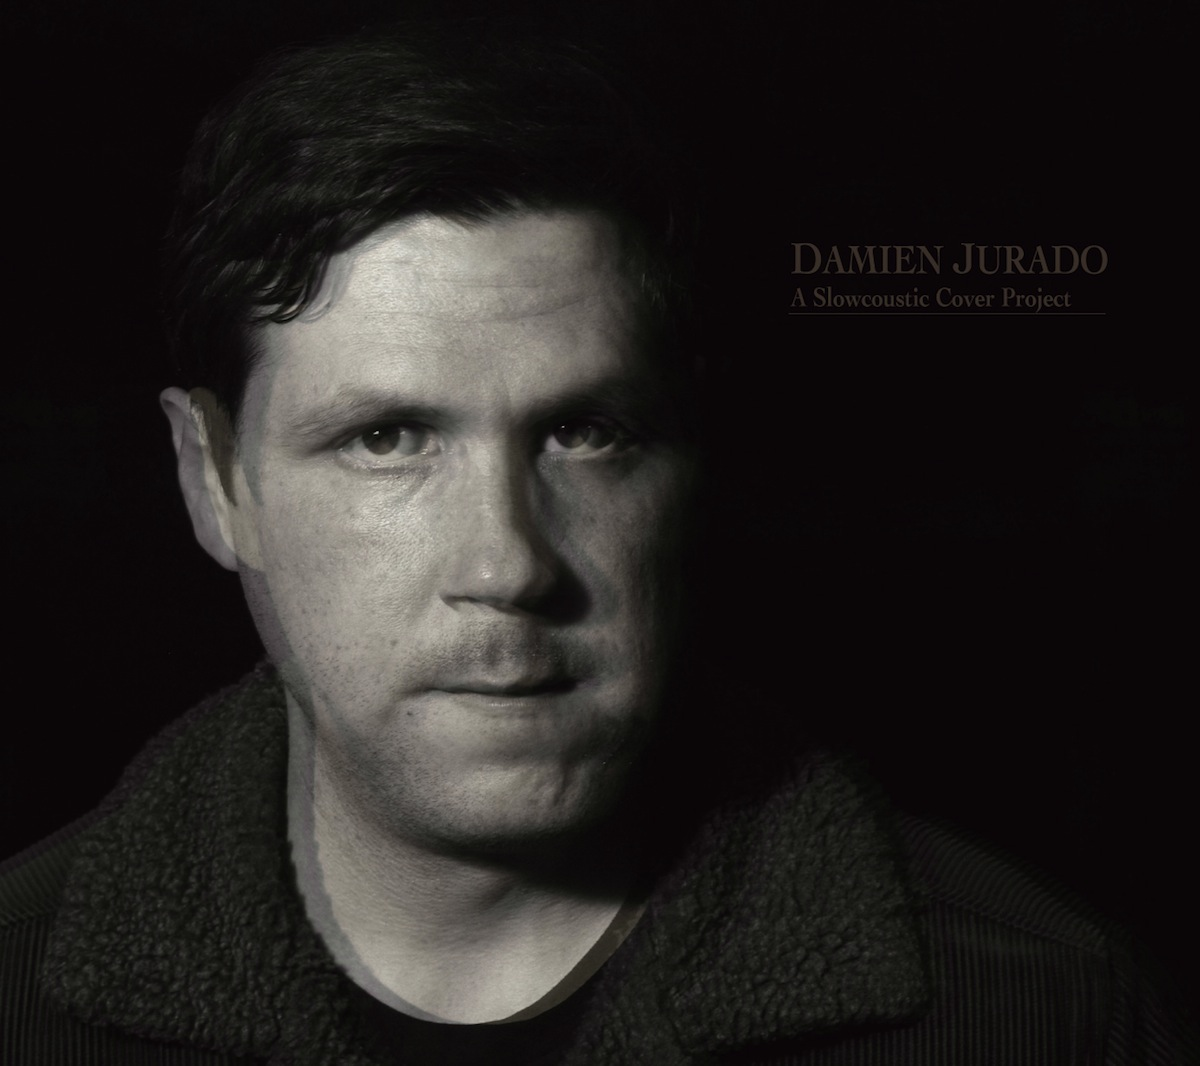 Damien-Jurado--A-Slowcoustic-Cover-Project